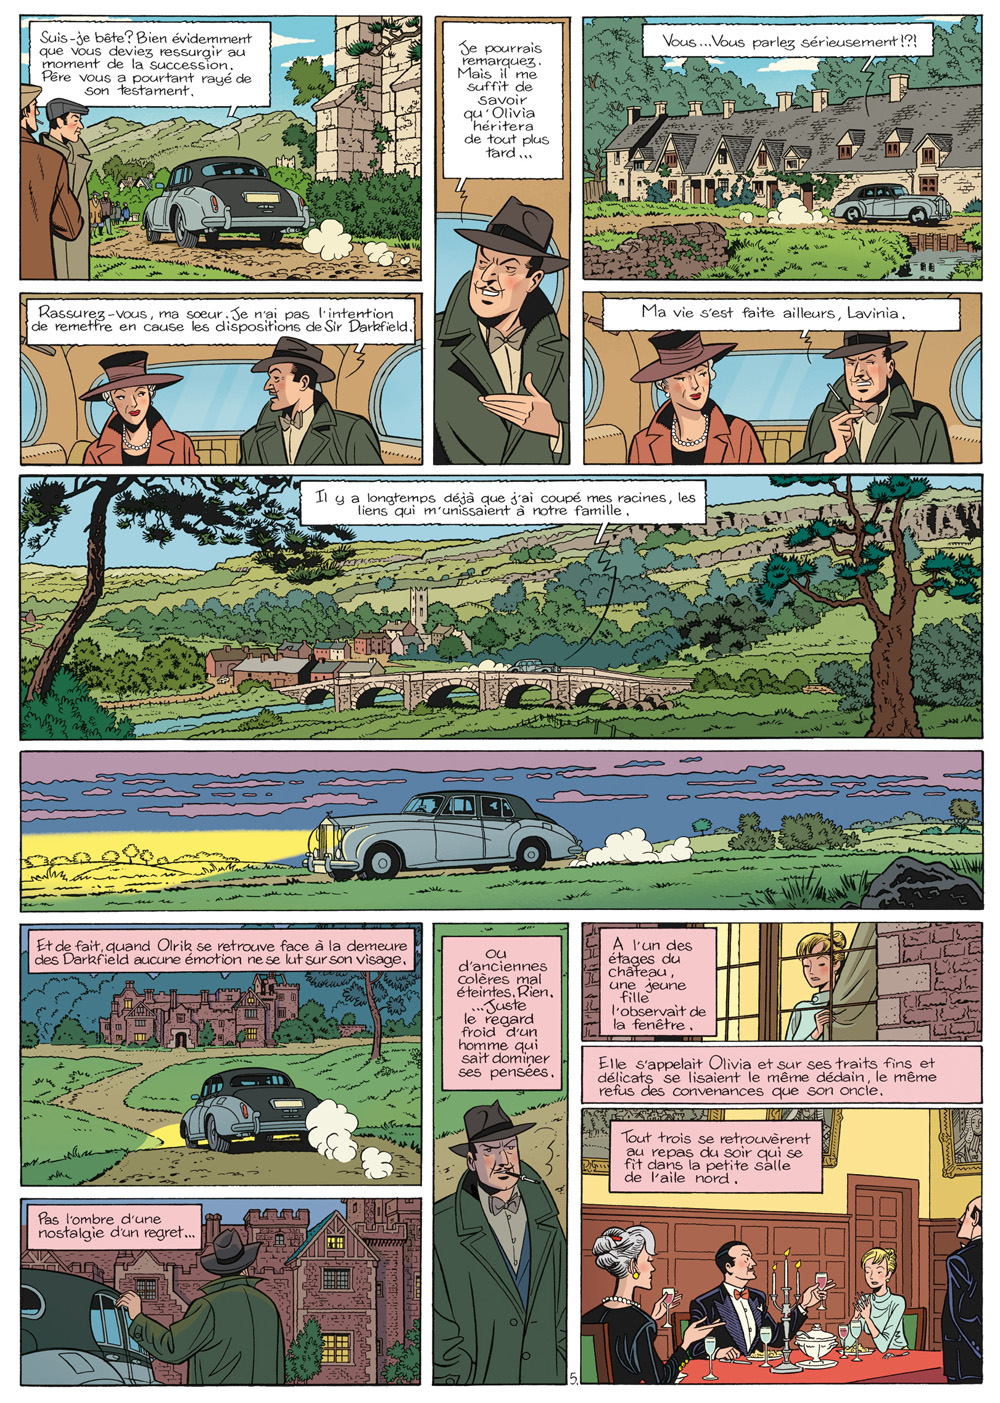 http://www.centaurclub.com/forum/Fred/divers-test/Blake-Mortimer-test-Wurm-Dufaux-PL505-coul.jpg